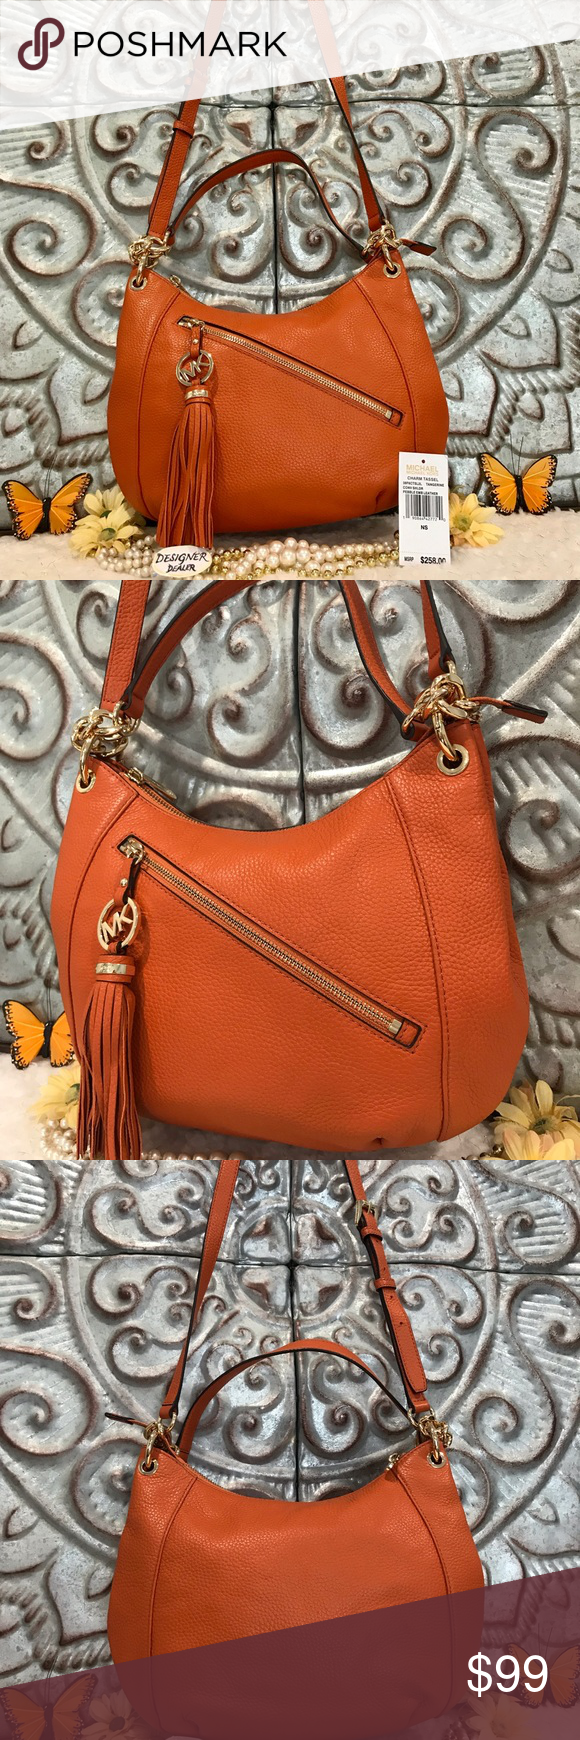 fabc5dbd9ec9 MICHAEL KORS Tassel Charm Shoulder Bag Tangerine Authentic Michael Kors  Charm tassel tangerine convertible Shoulder pebble